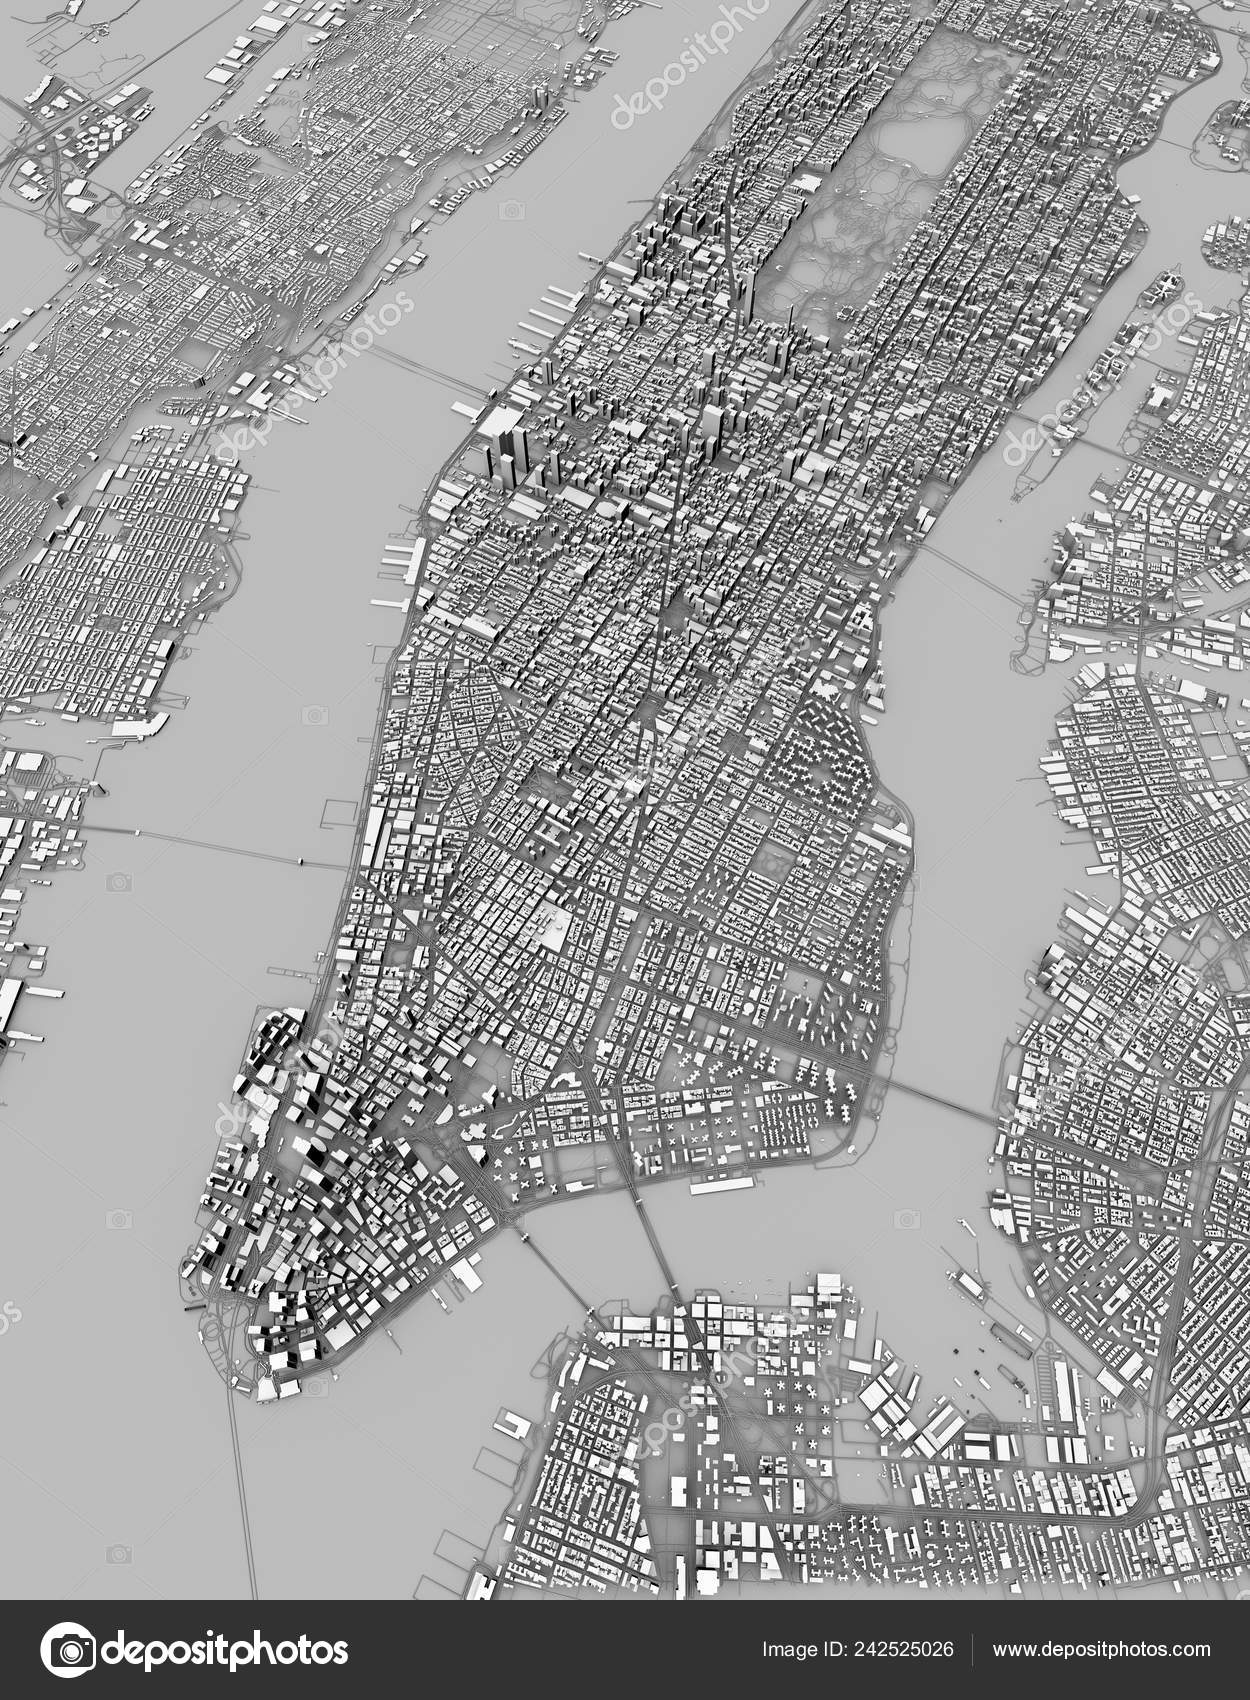 Map Of New York 3d.Satellite View New York City Map Buildings Rendering Streets